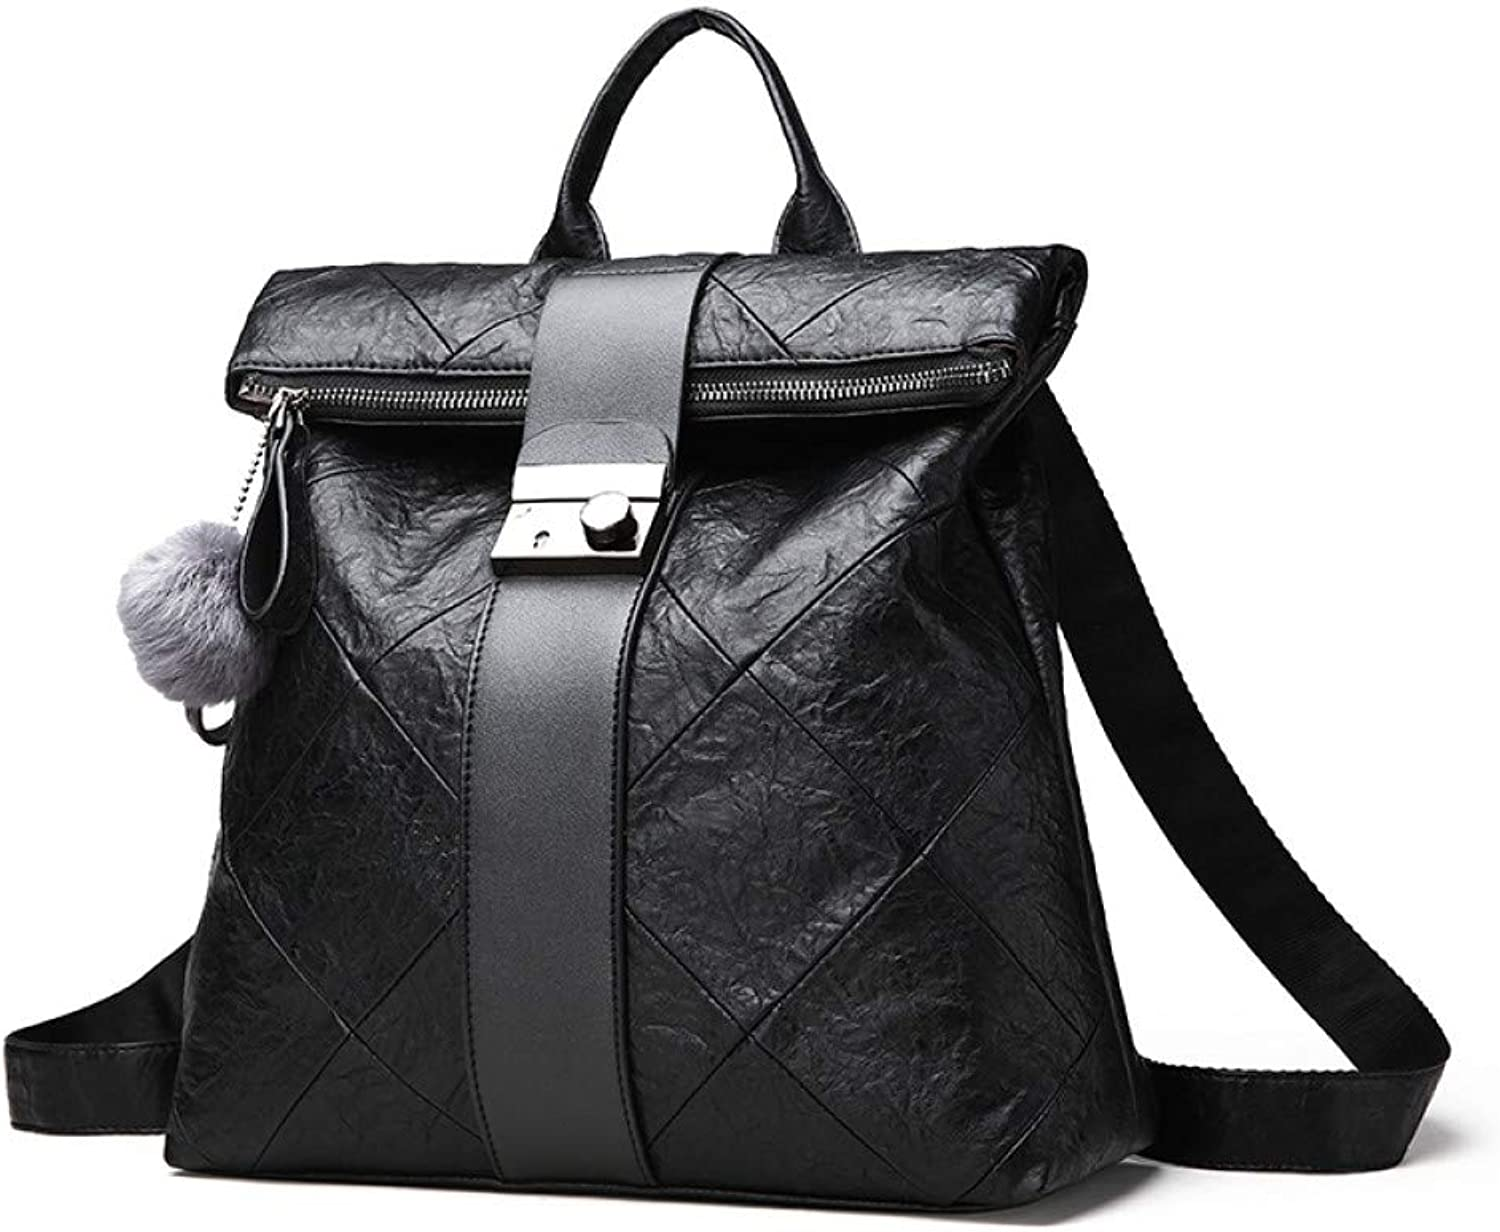 VITANB 11% Fashion New Anti Theft Backpack Women Backpacks Solid Fashion School Bags for Girls Pu Leather Backpack